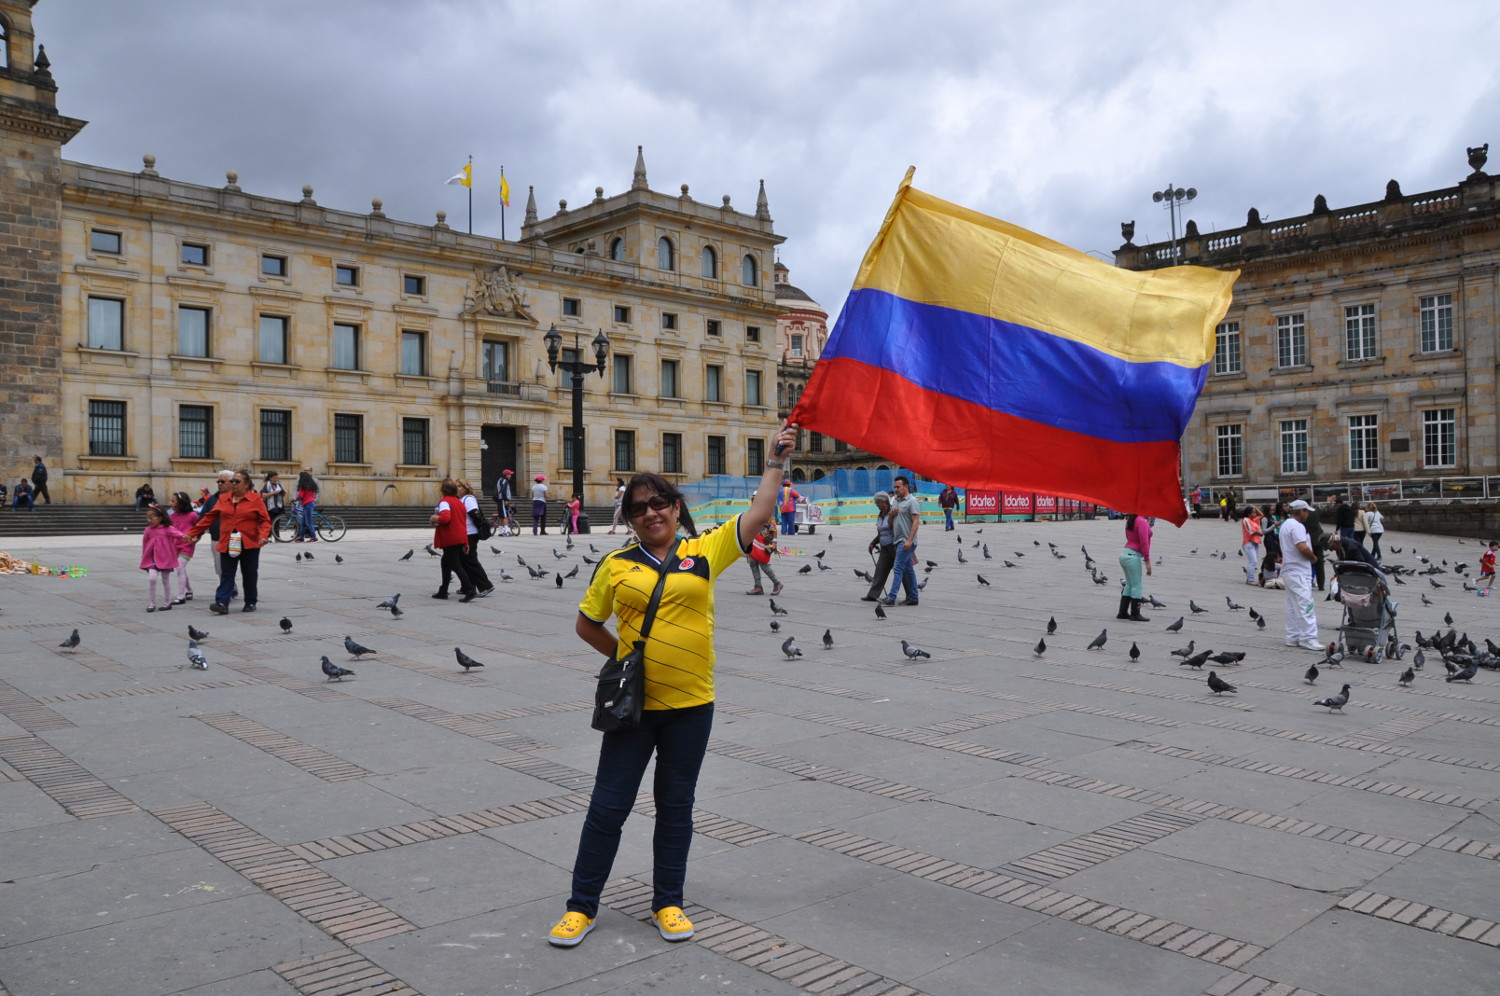 Der 20. Juli ist kolumbianischer Nationalfeiertag | July 20 is a national holiday in Colombia